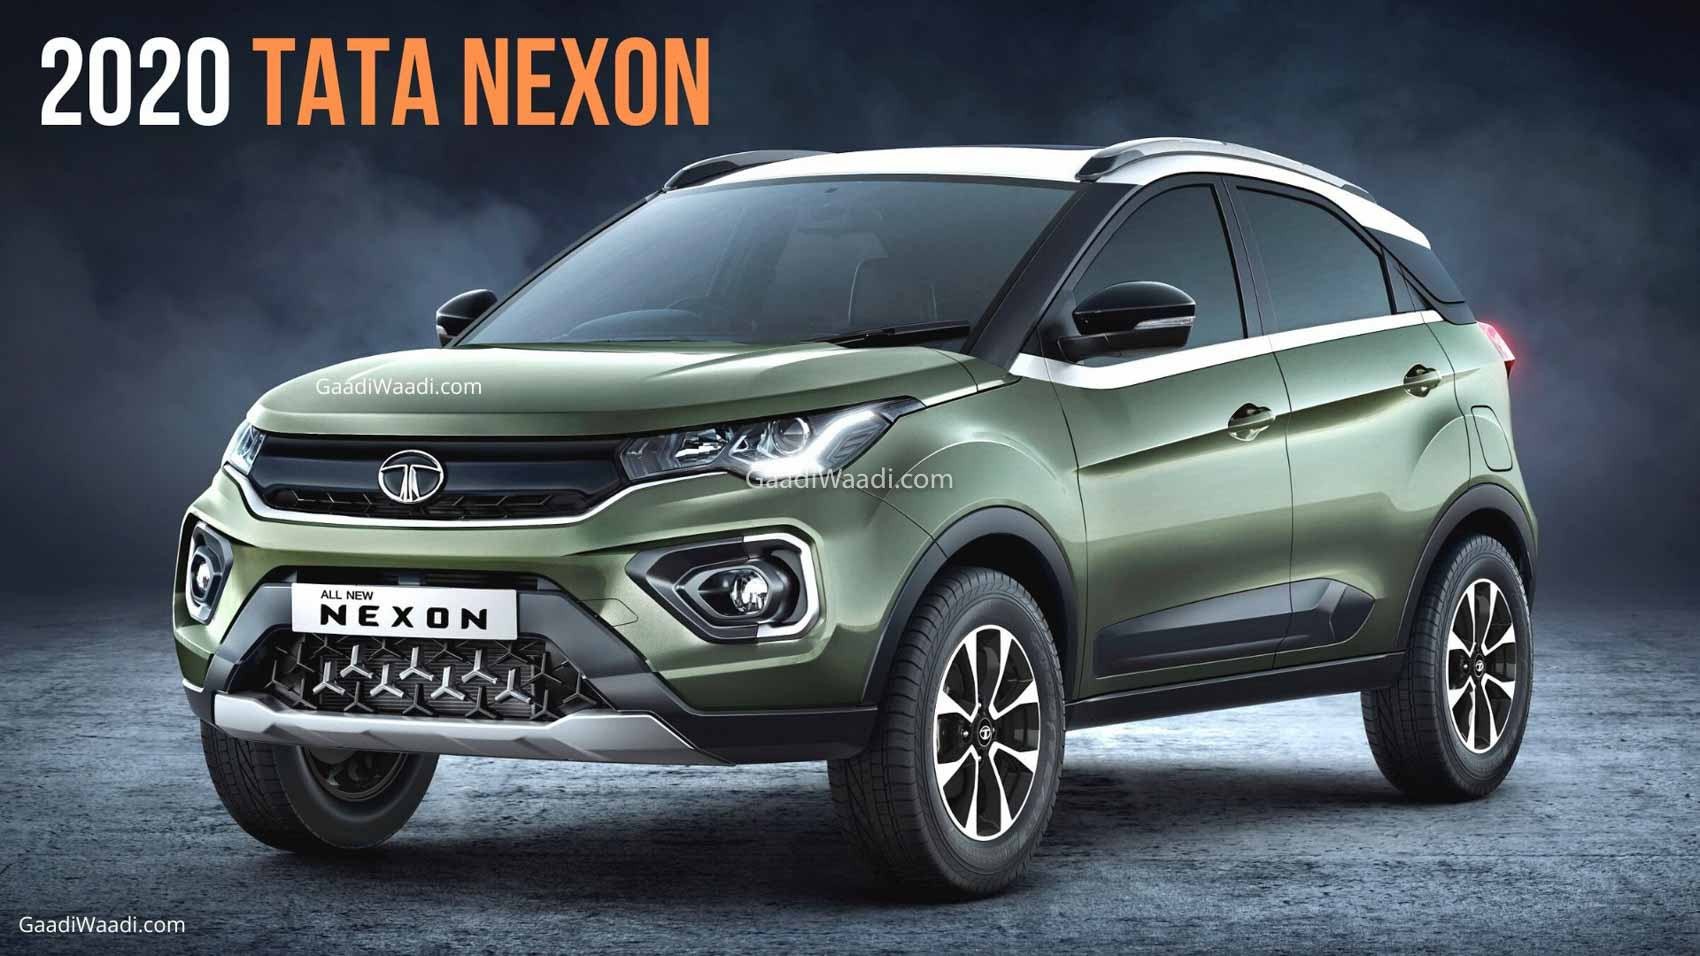 2020 Tata Nexon Facelift Launched At Rs. 6.95 Lakh – Walkaround Video